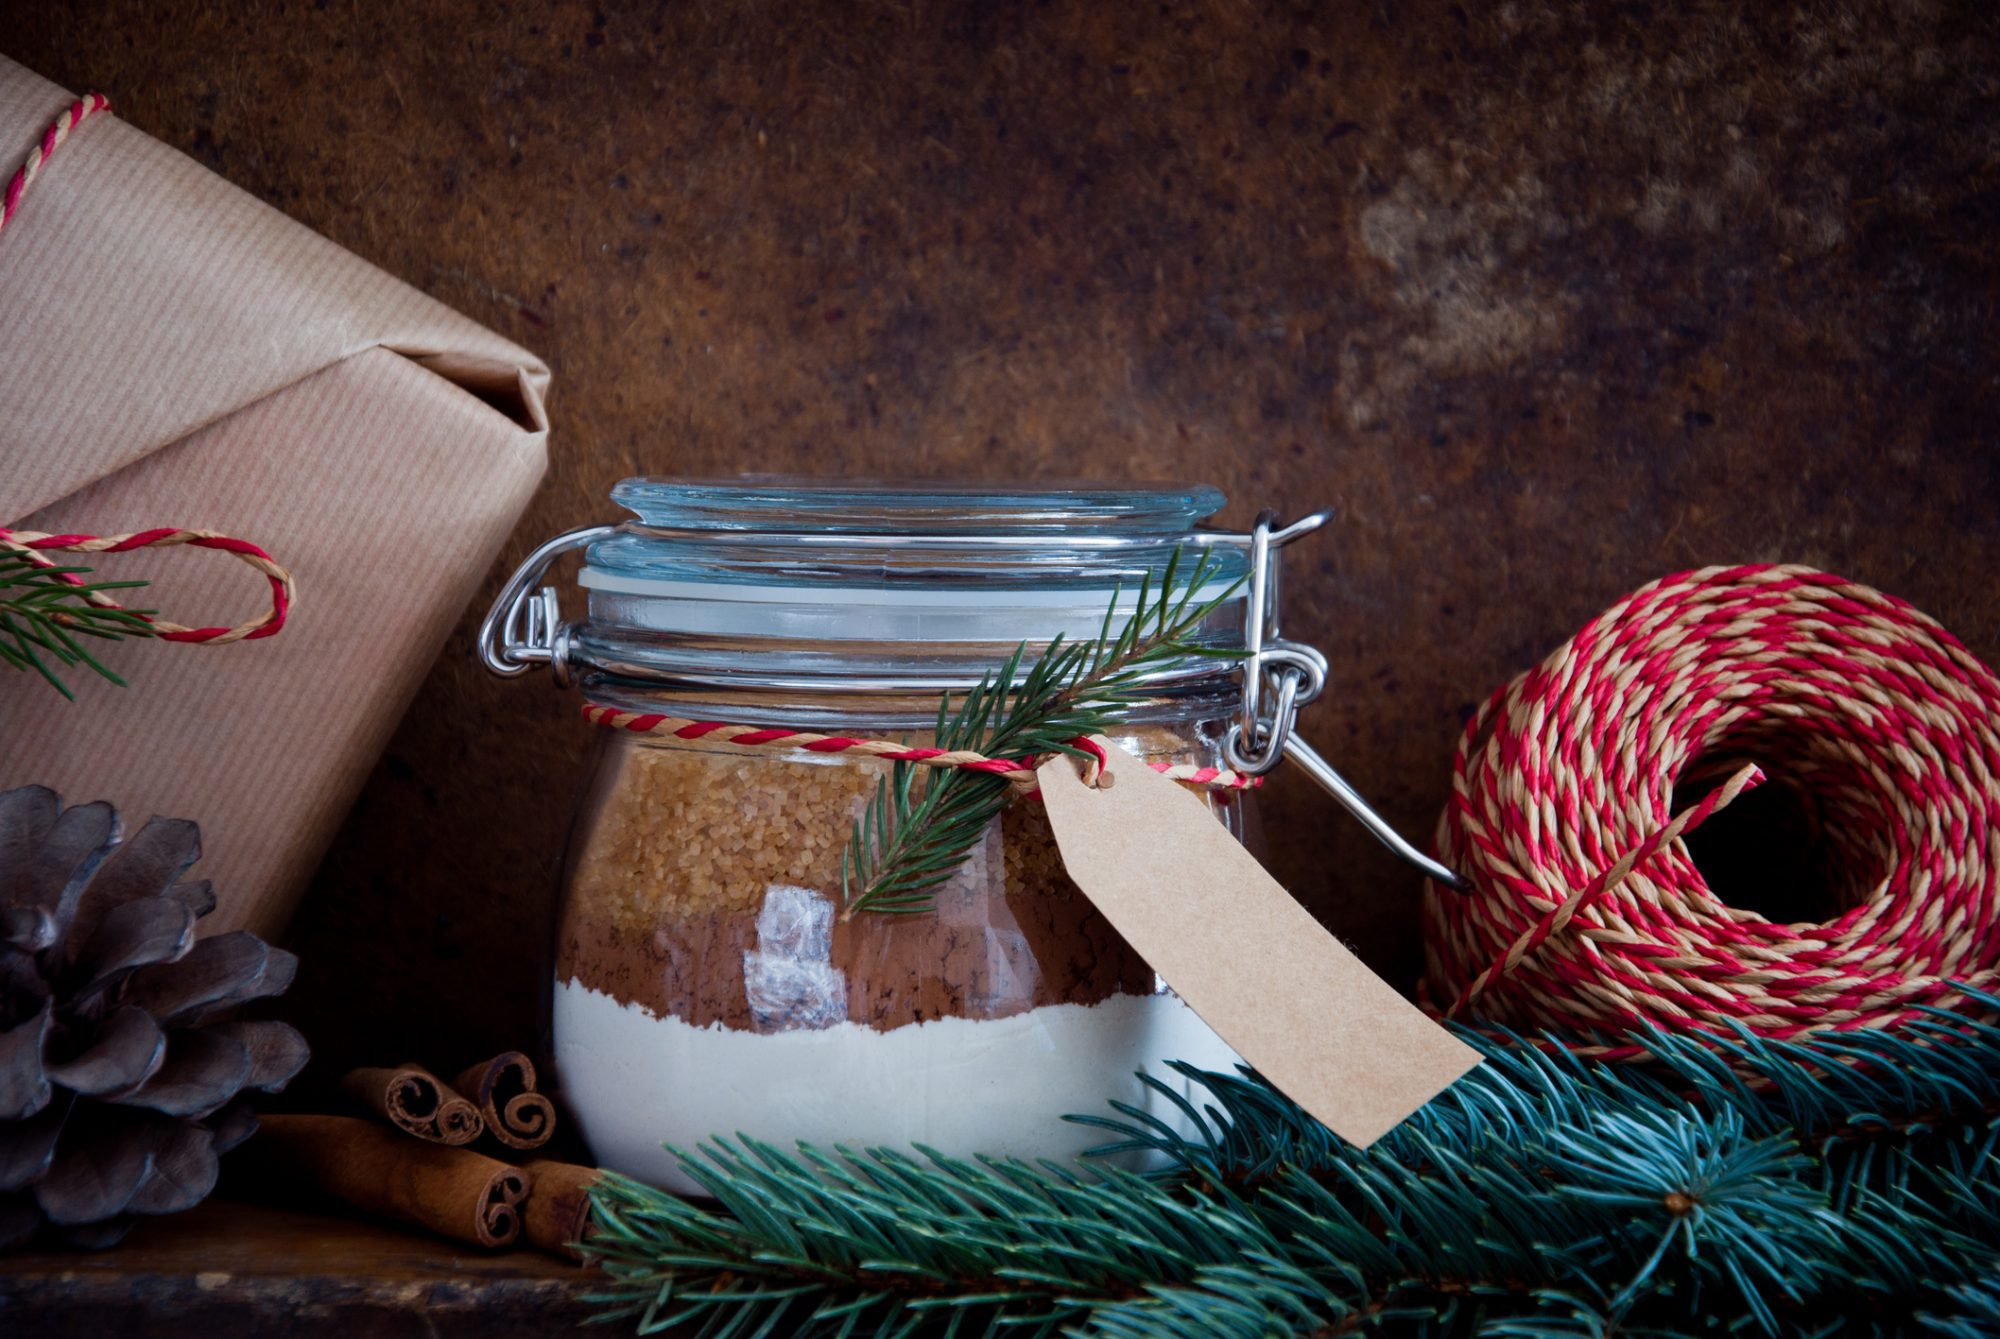 Holiday cake mix in jar gift image